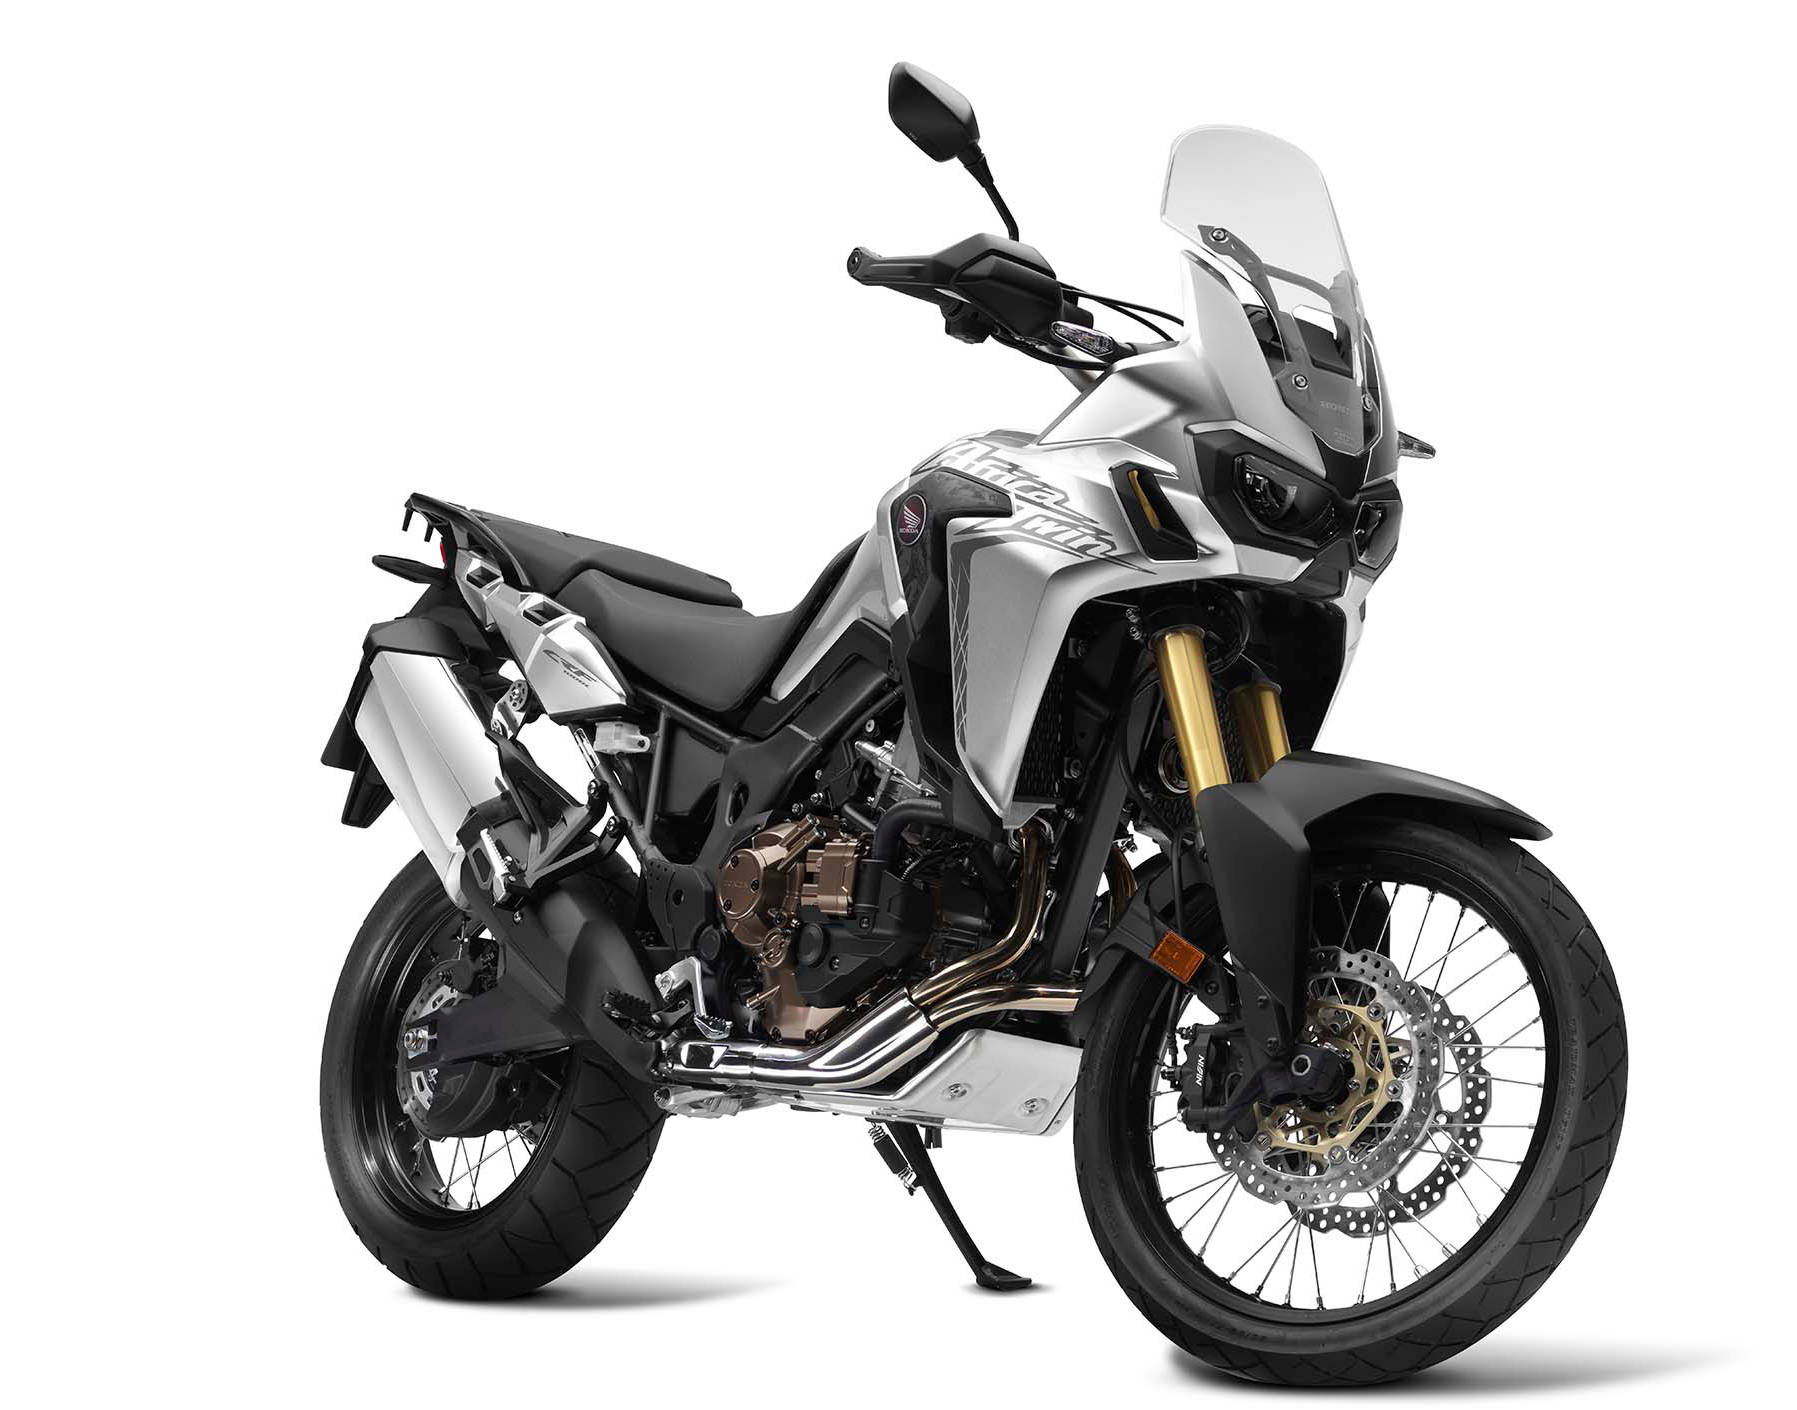 Following Our Story Yesterday This Morning MD Received A Press Release From American Honda Providing Details On The 2016 CRF1000L Africa Twin